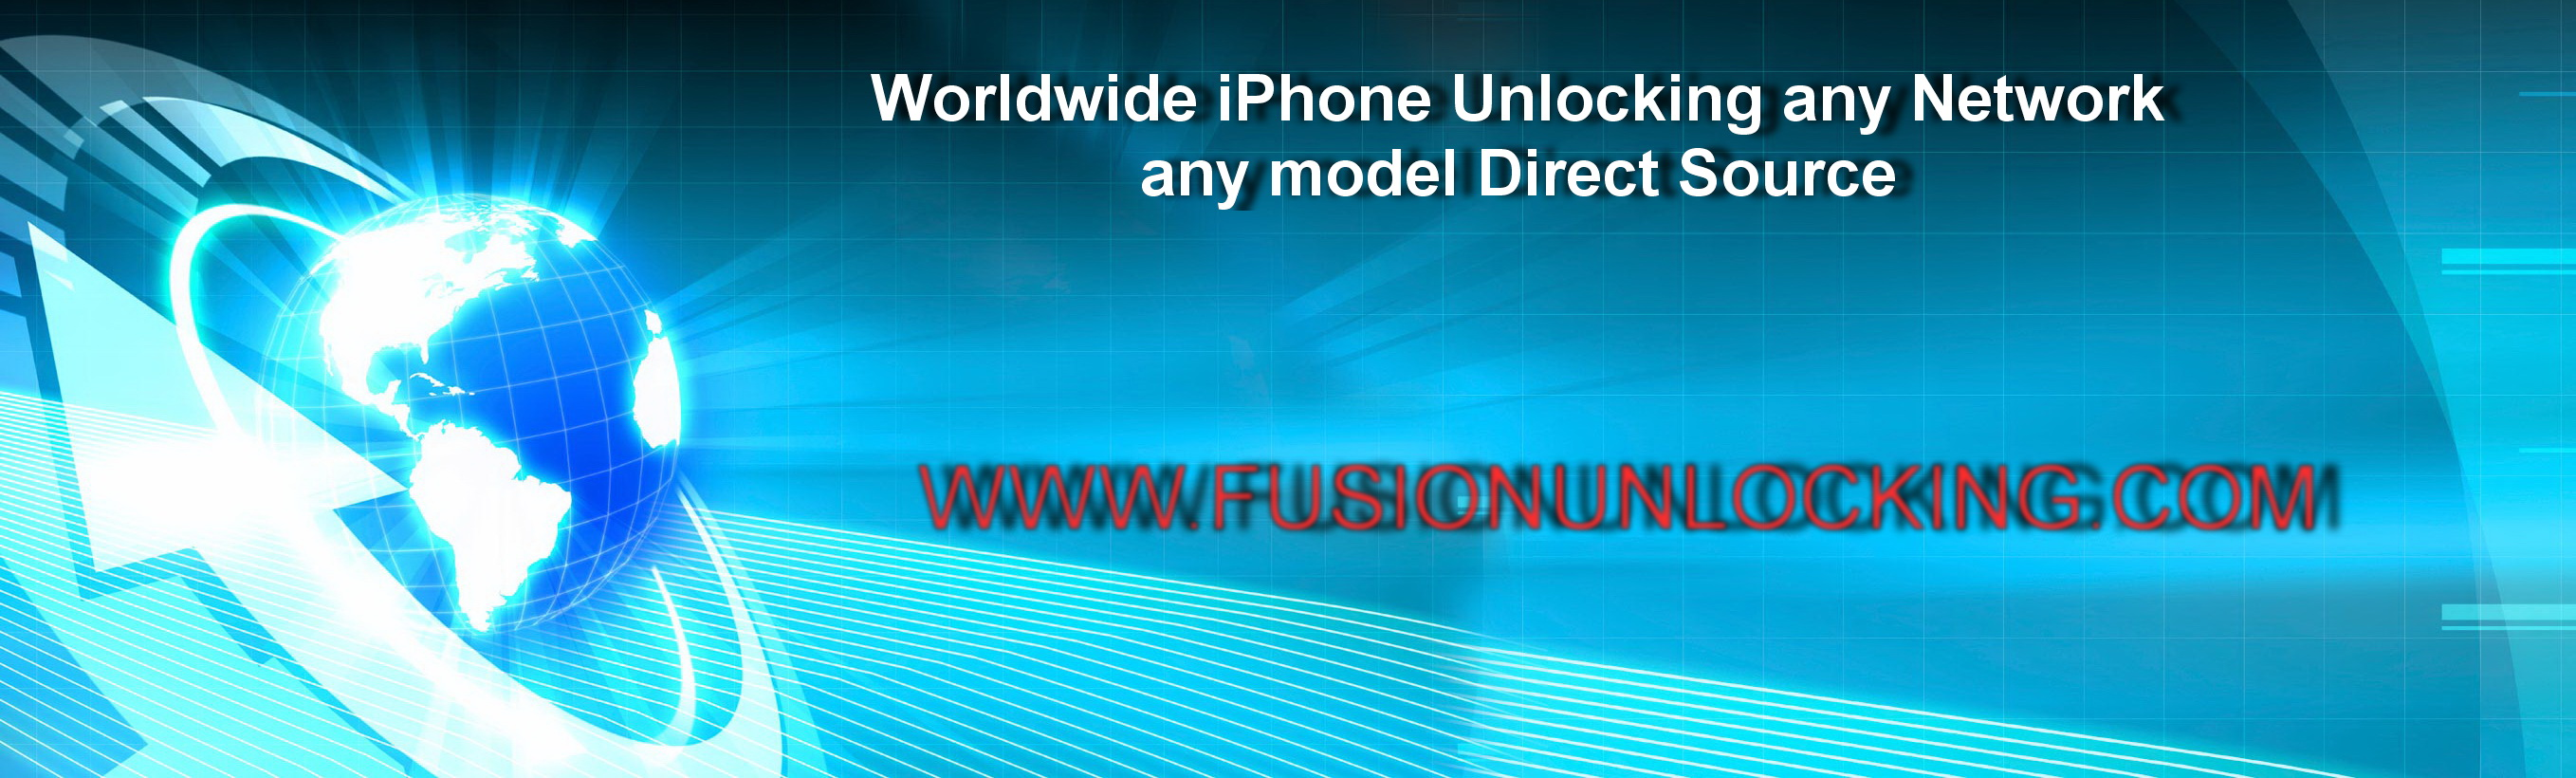 Fusion Unlocking Official Store Direct Source for iPhone Samsung 2716x820